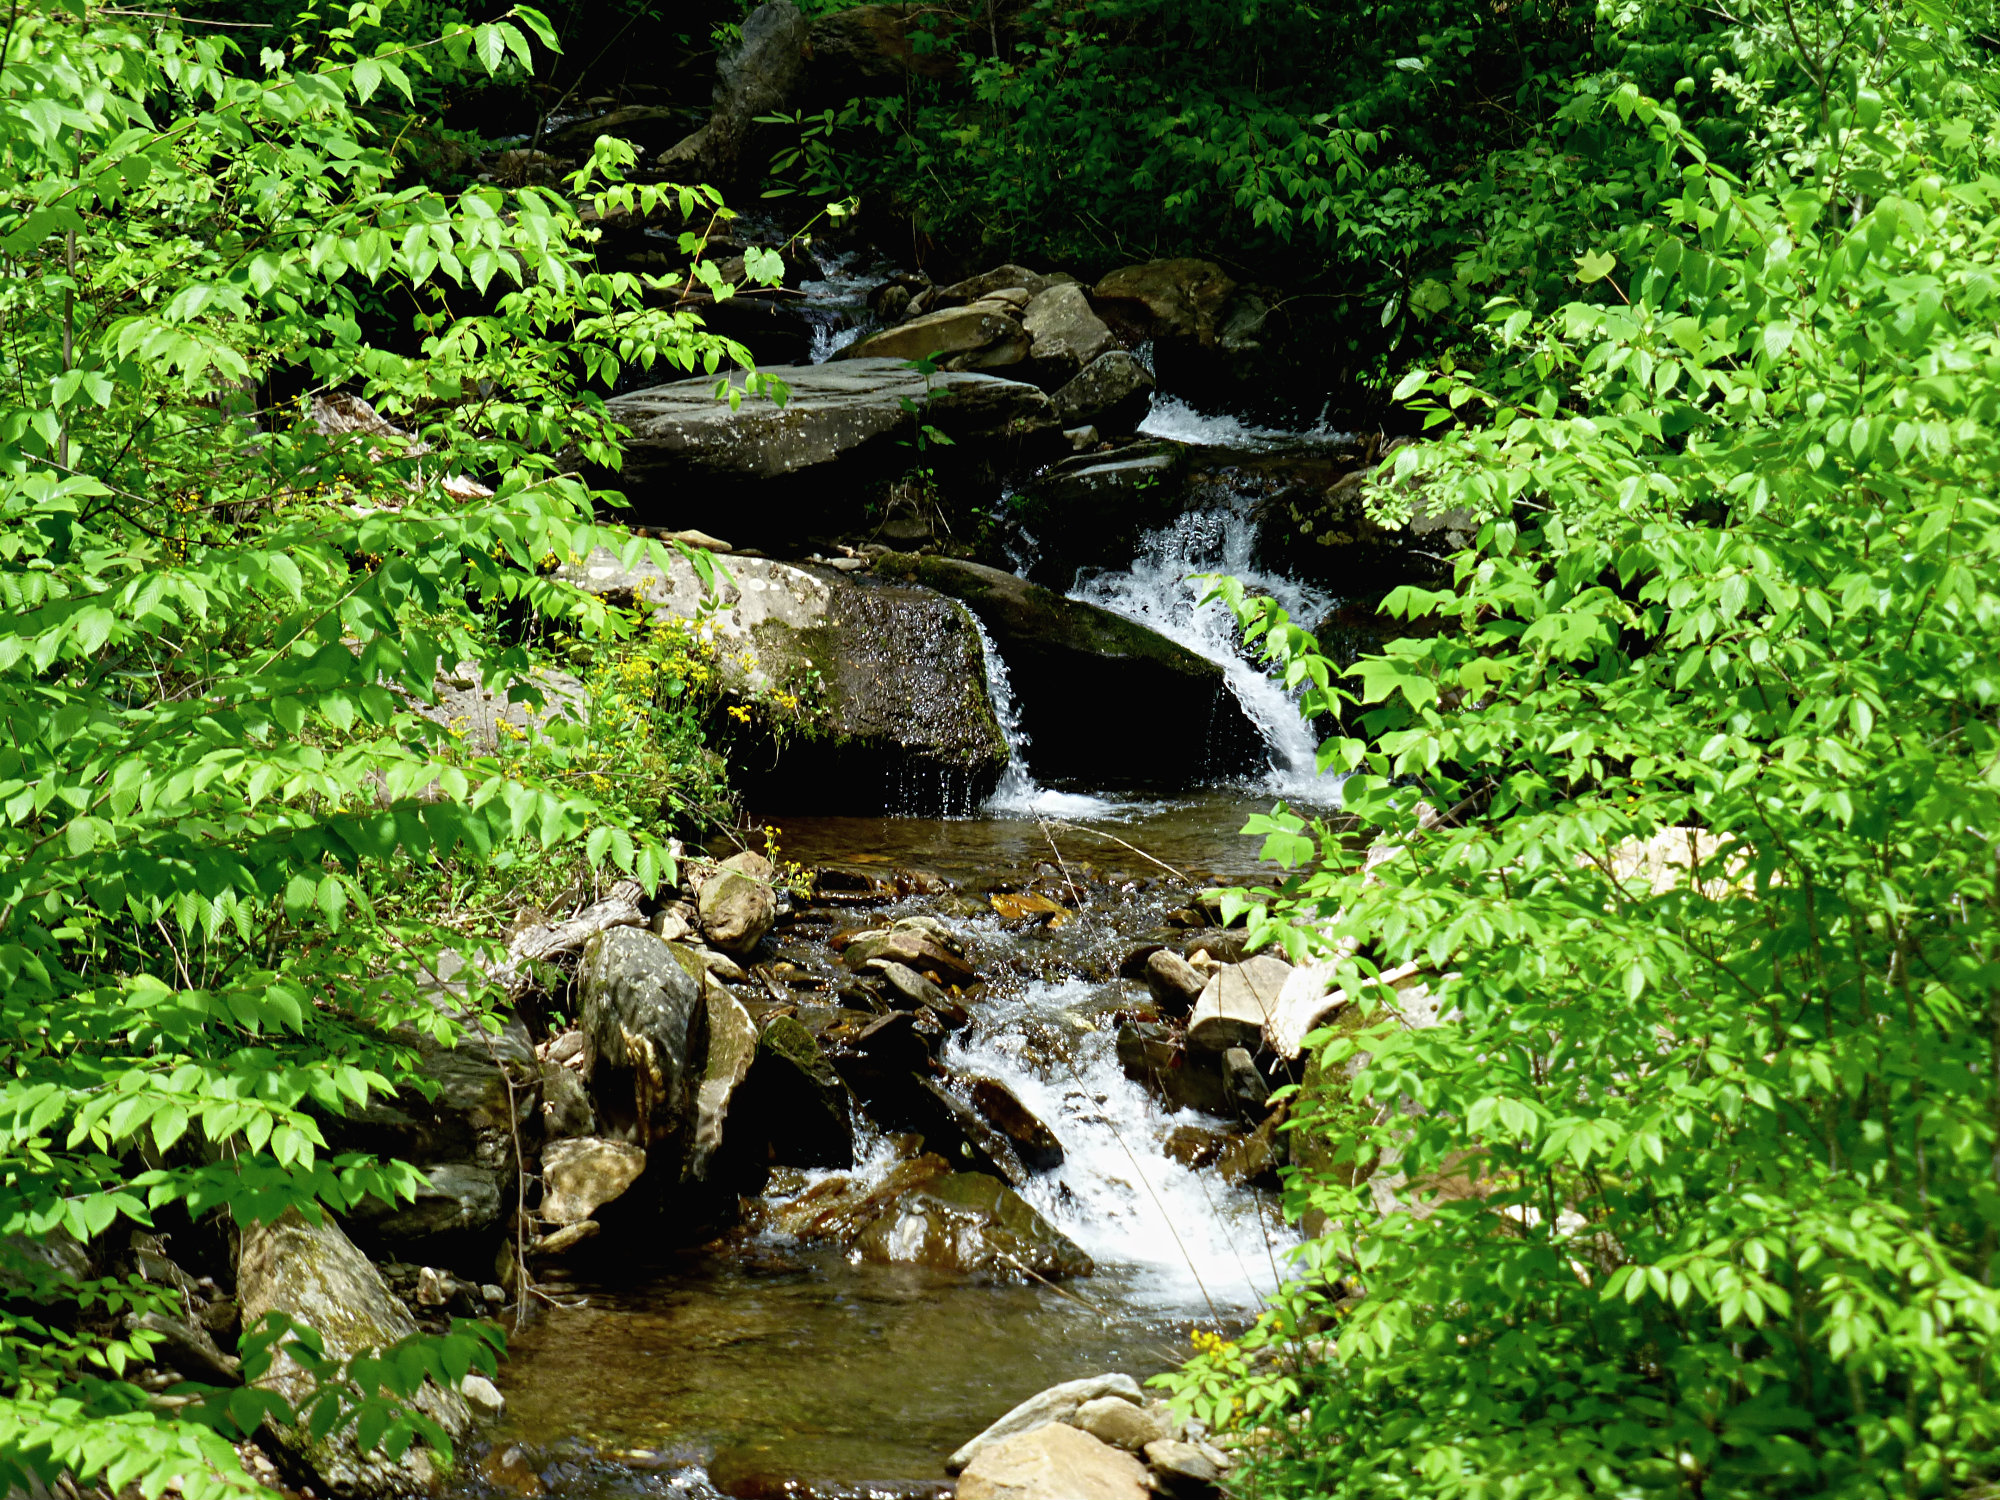 Water cascading down over various-sized boulders framed by leafy trees